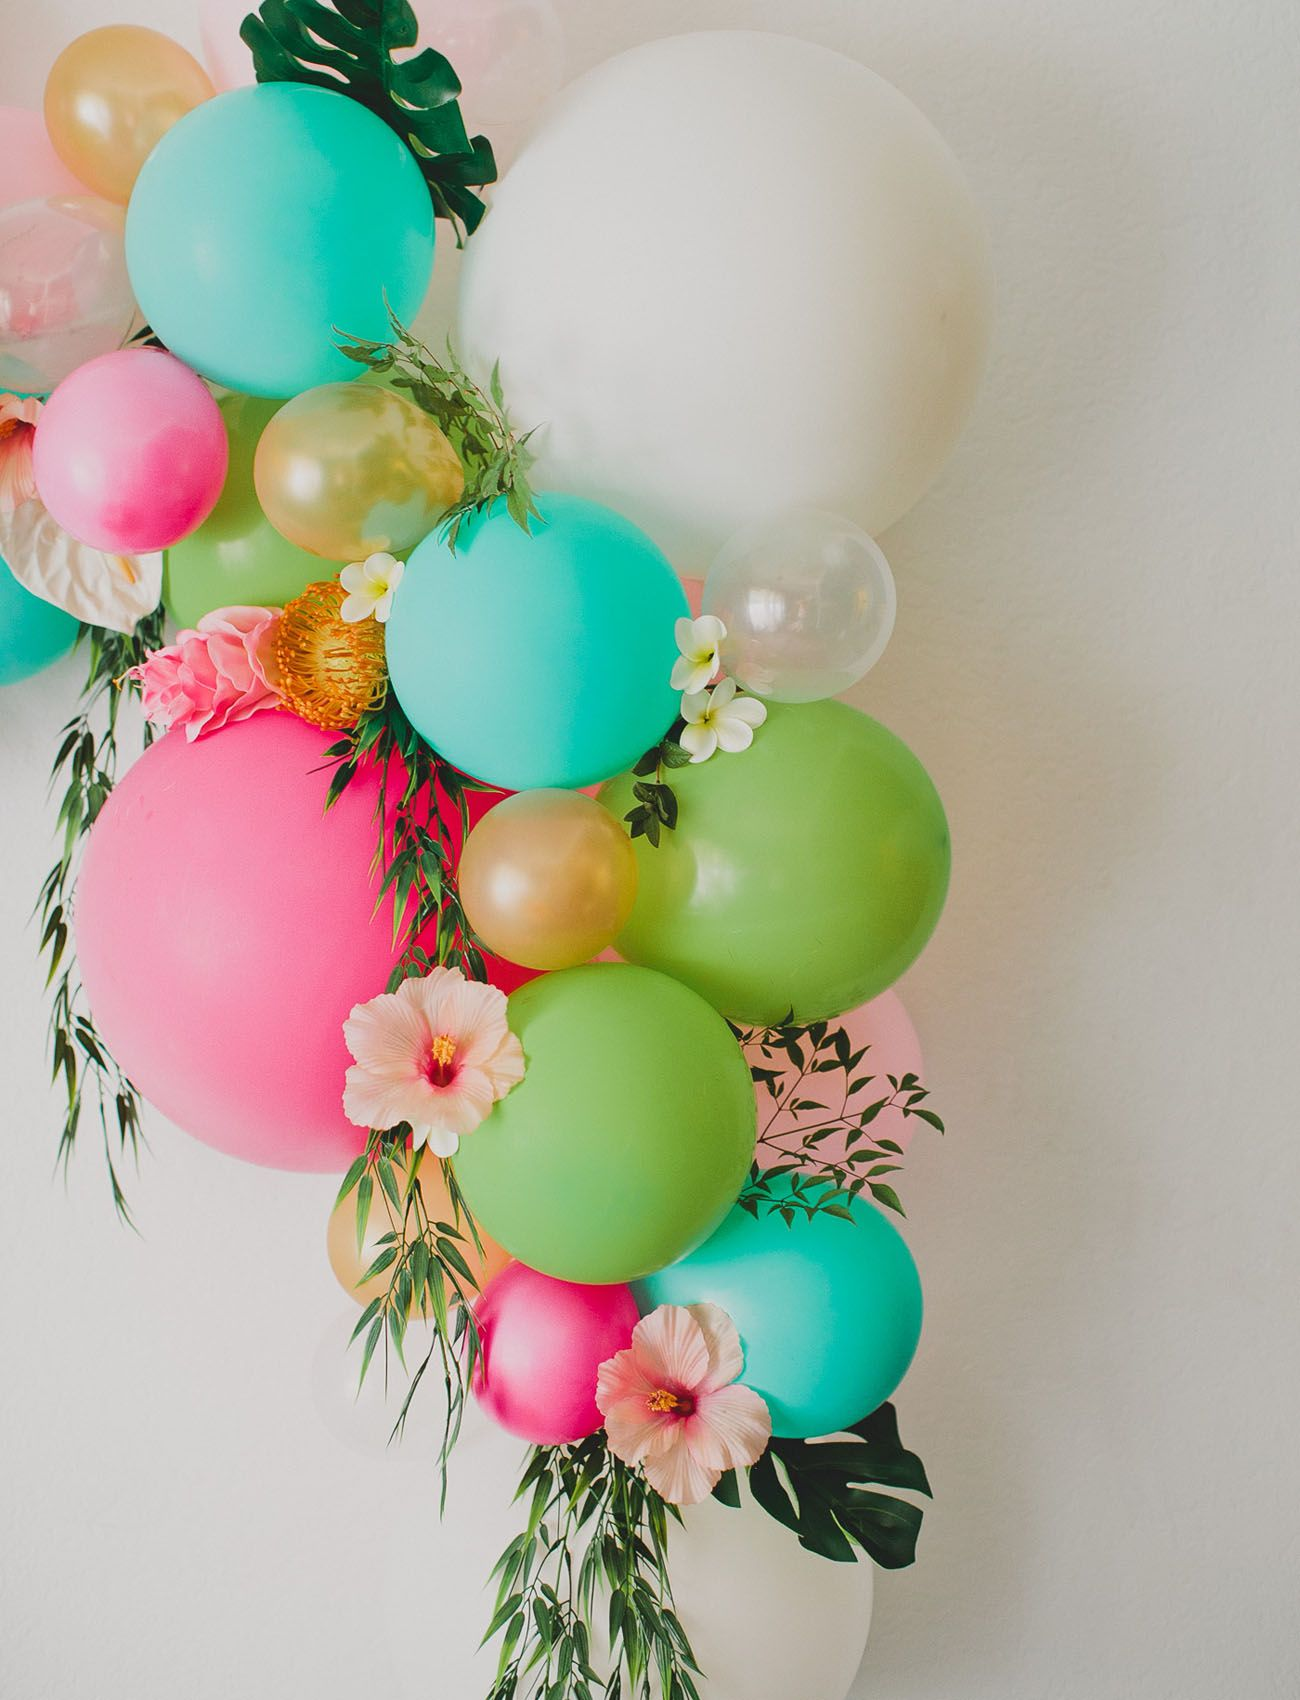 DIY Floral Balloon Arch | Pinterest | Arch, Floral and Birthdays